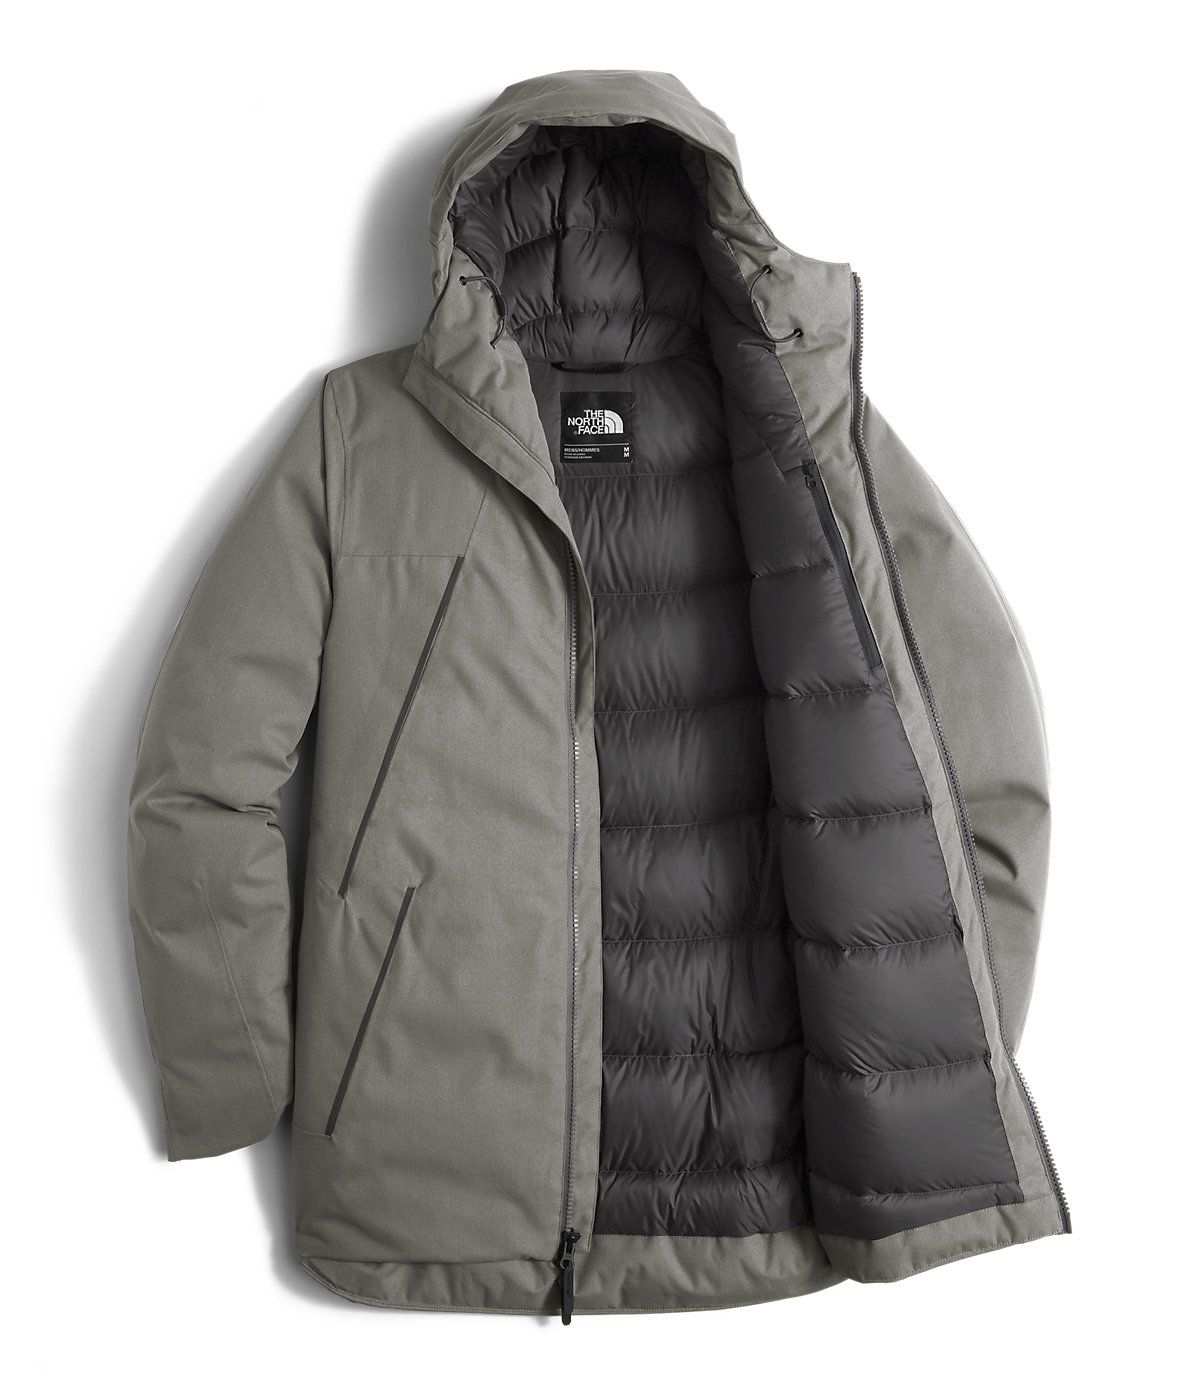 MEN'S FAR NORTHERN WATERPROOF PARKA | Fashion | Pinterest ...